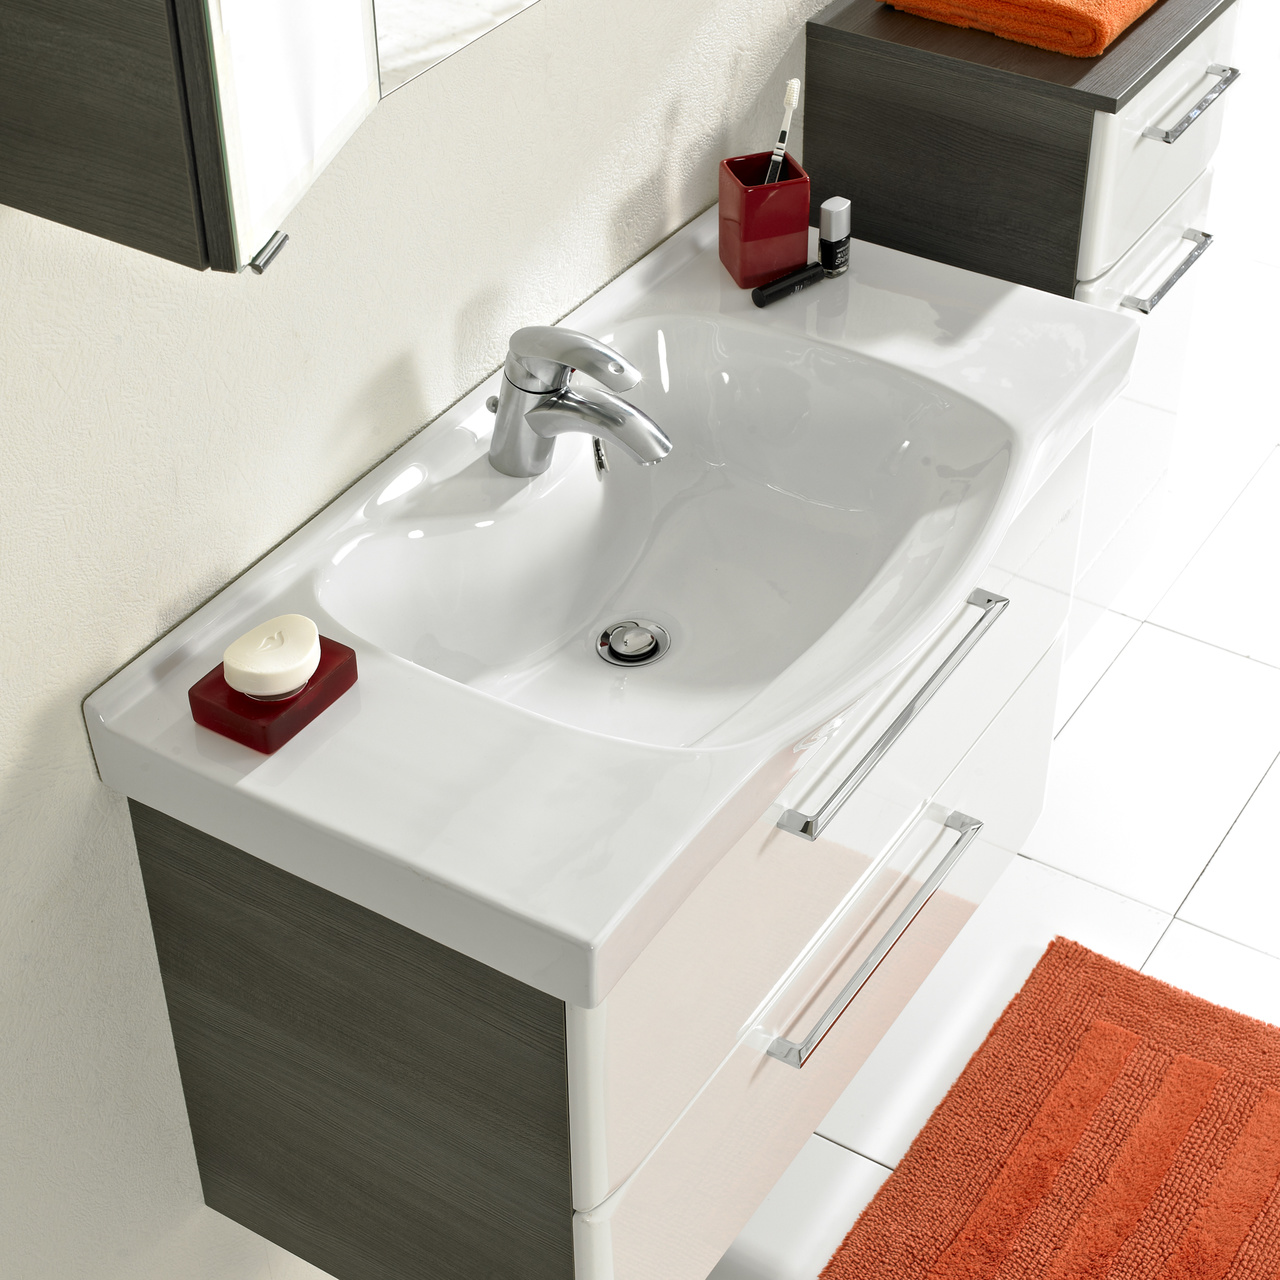 Pelipal Waschtischkonsole 979 Sera Quickset Bathroom Furniture Brands Furniture By Pelipal